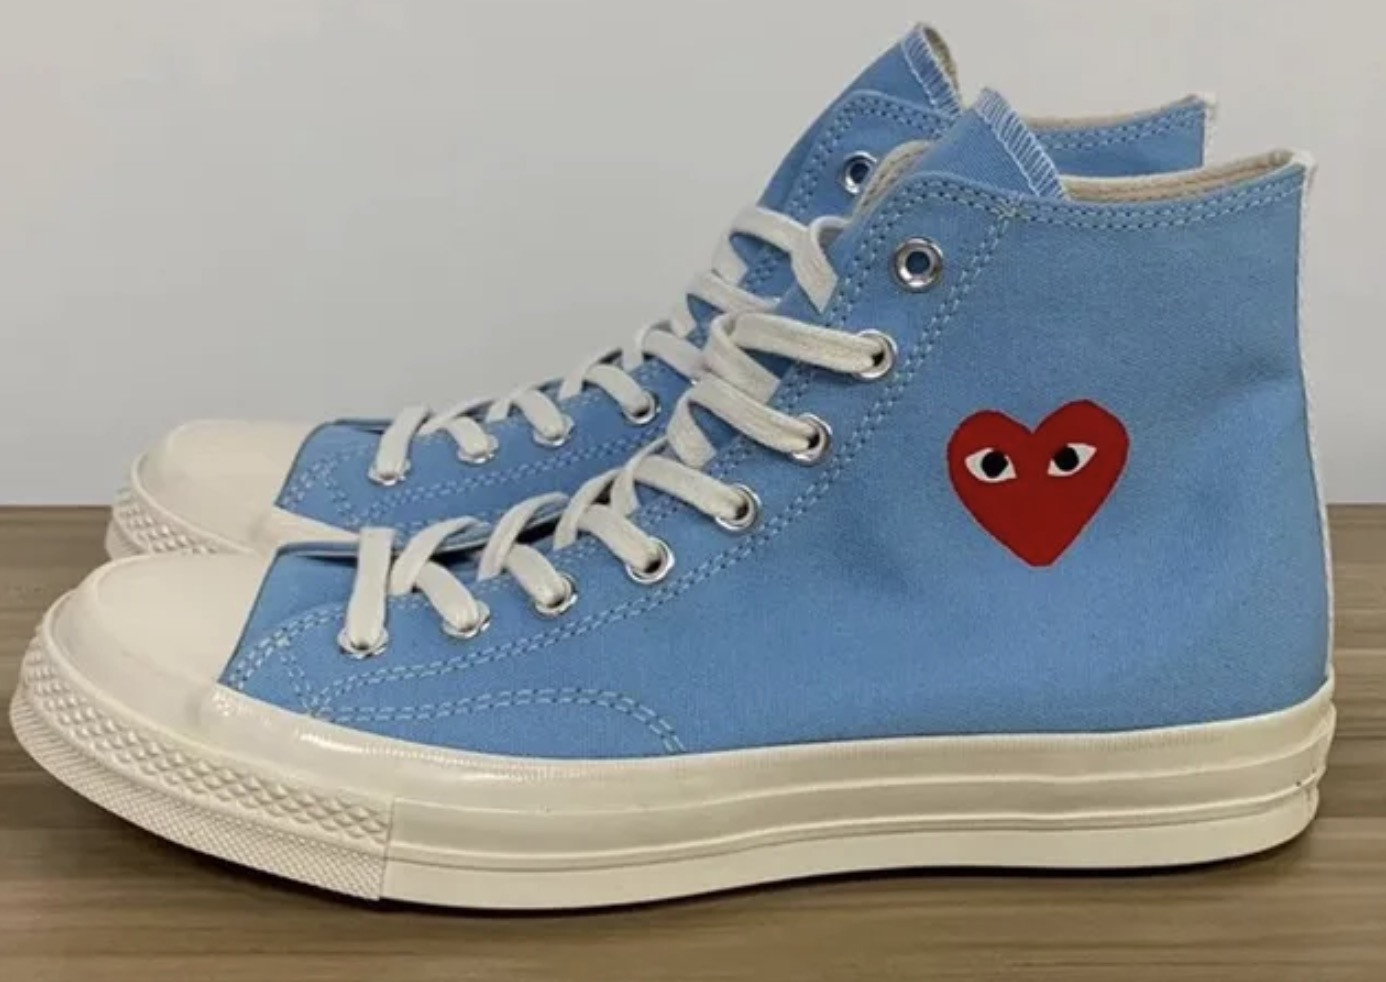 Three New Comme des Garcons Play x Converse Chuck Taylors Have Just Been Unveiled 10 blue